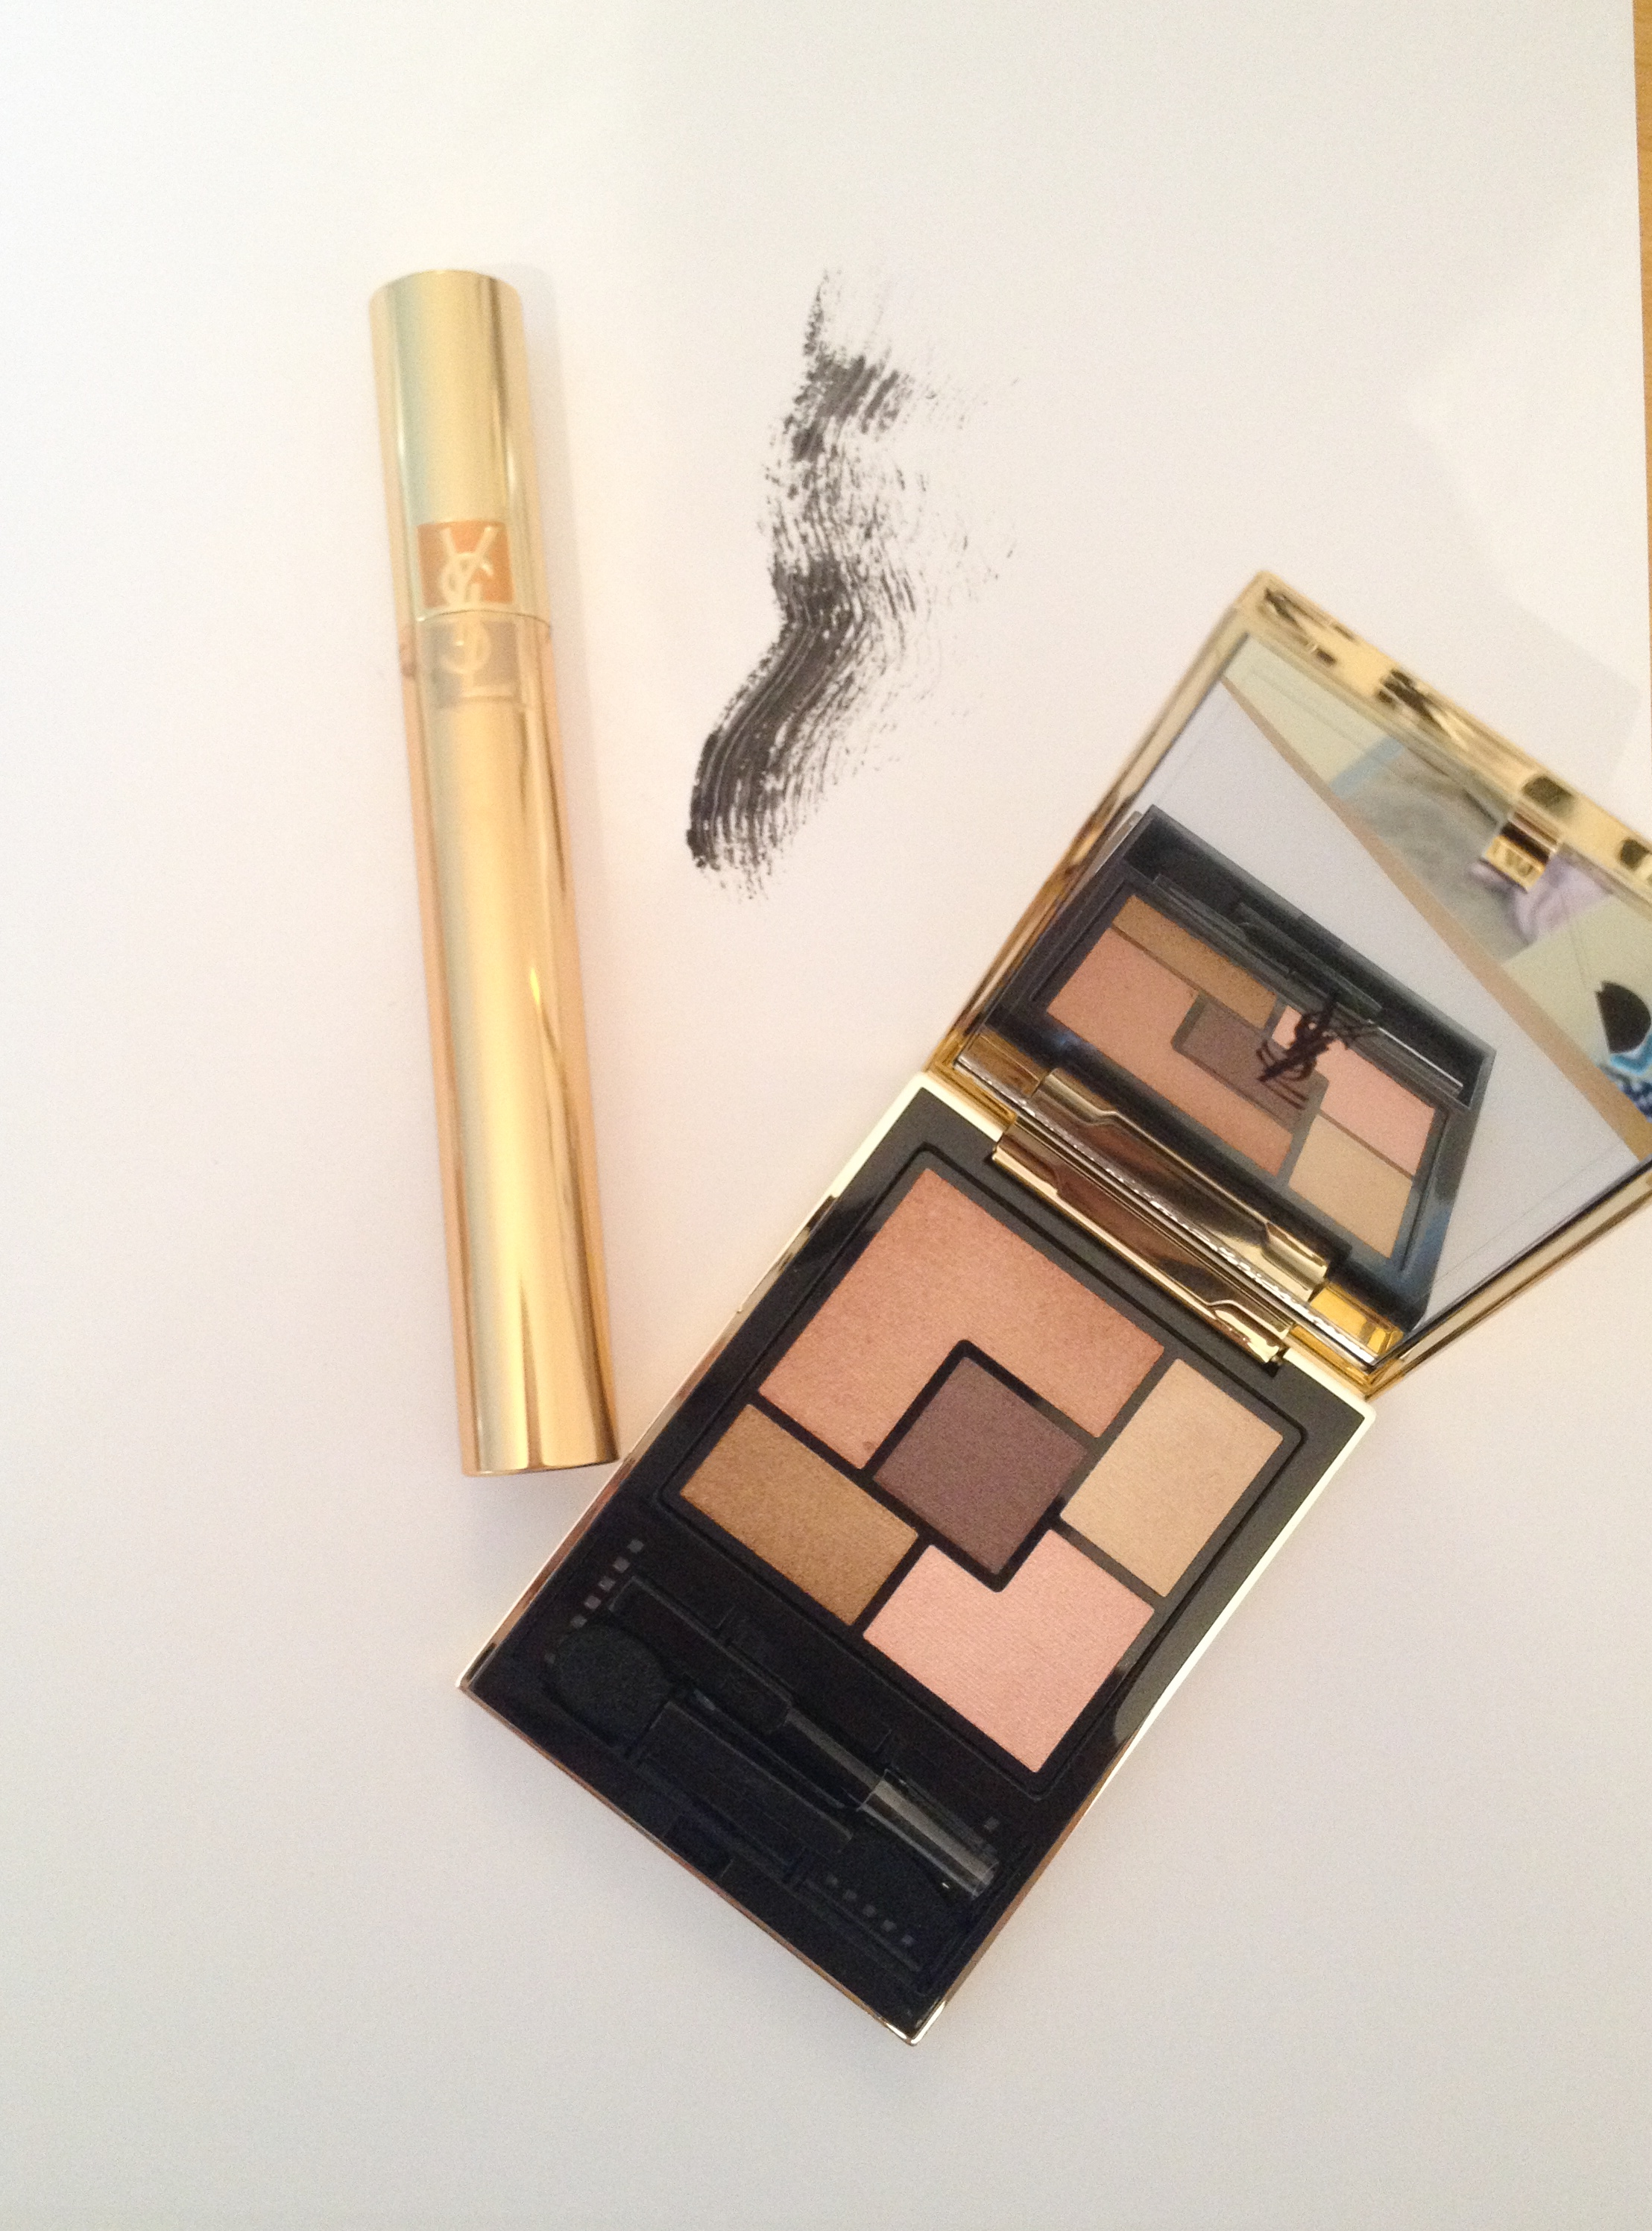 Yves Saint Laurent Makeup Step By Review Baby Doll Kiss Ampamp Blush 05 Rouge Effrontee 3 Mascara Volume Effet Faux Cils